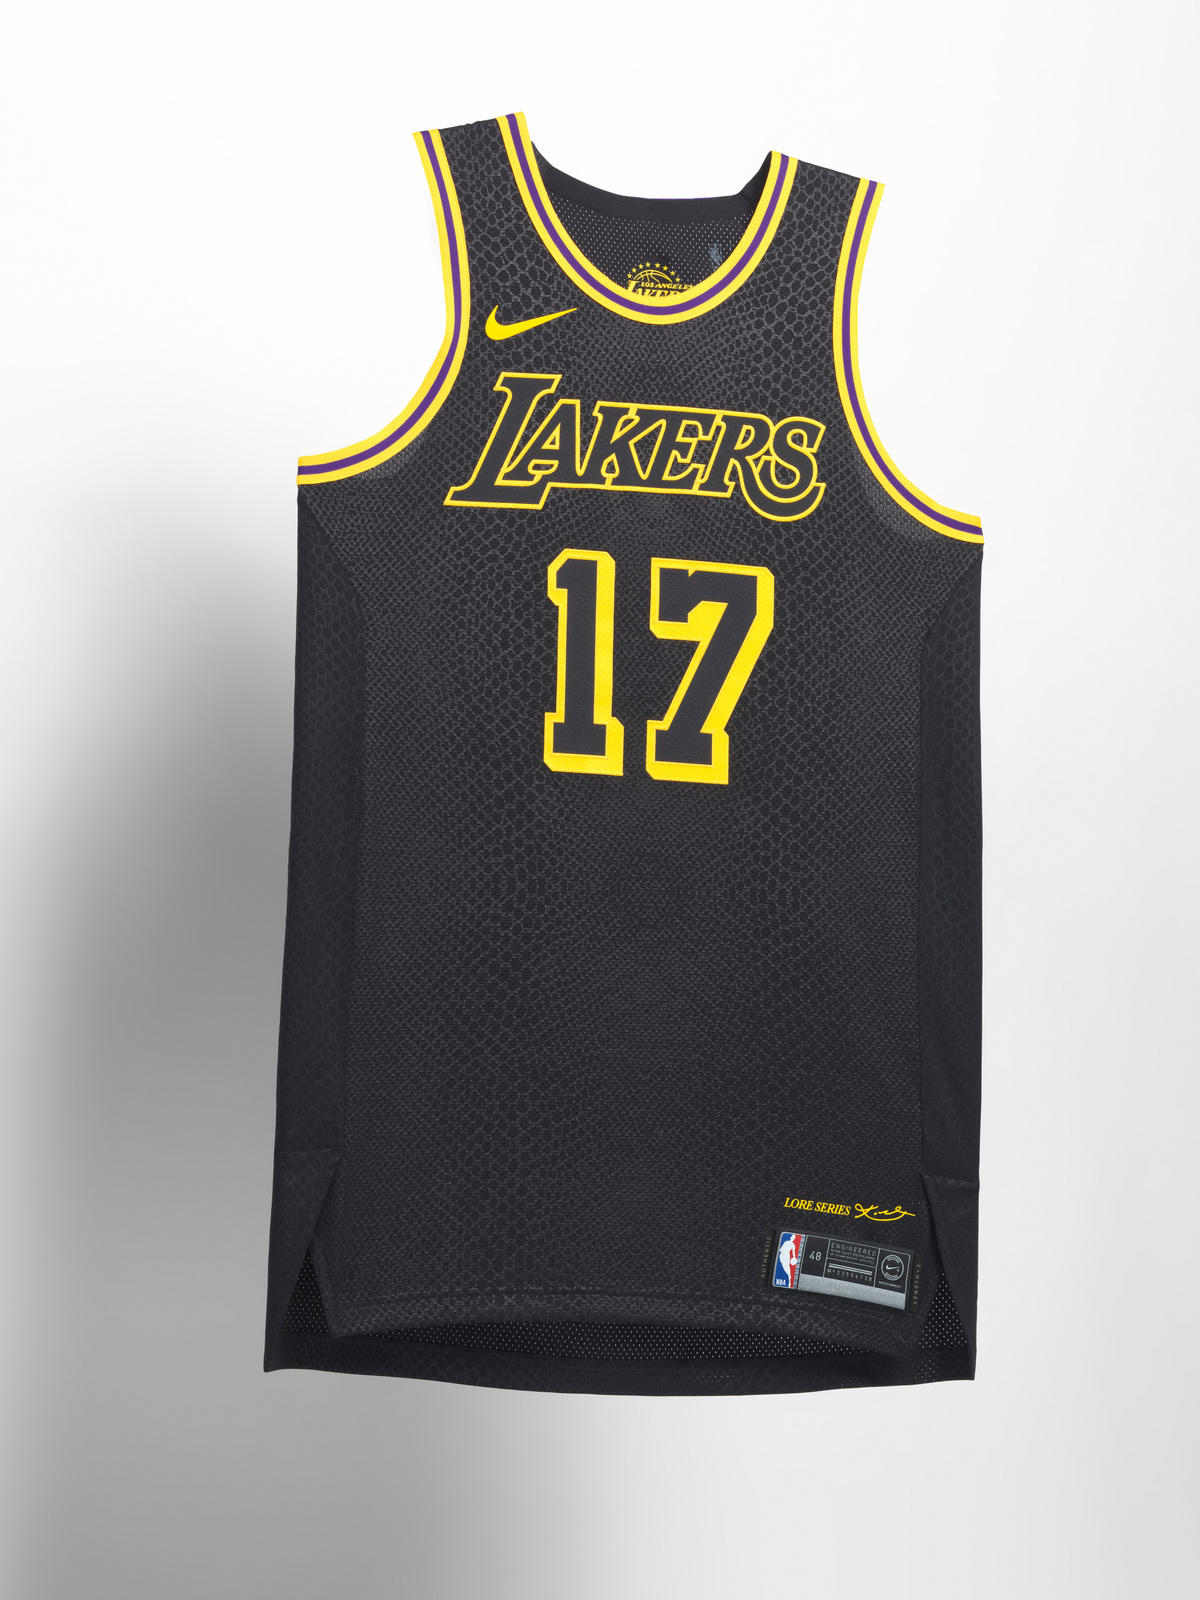 e89f58080dcb Nike NBA City Edition Uniform 39. Los Angeles Lakers